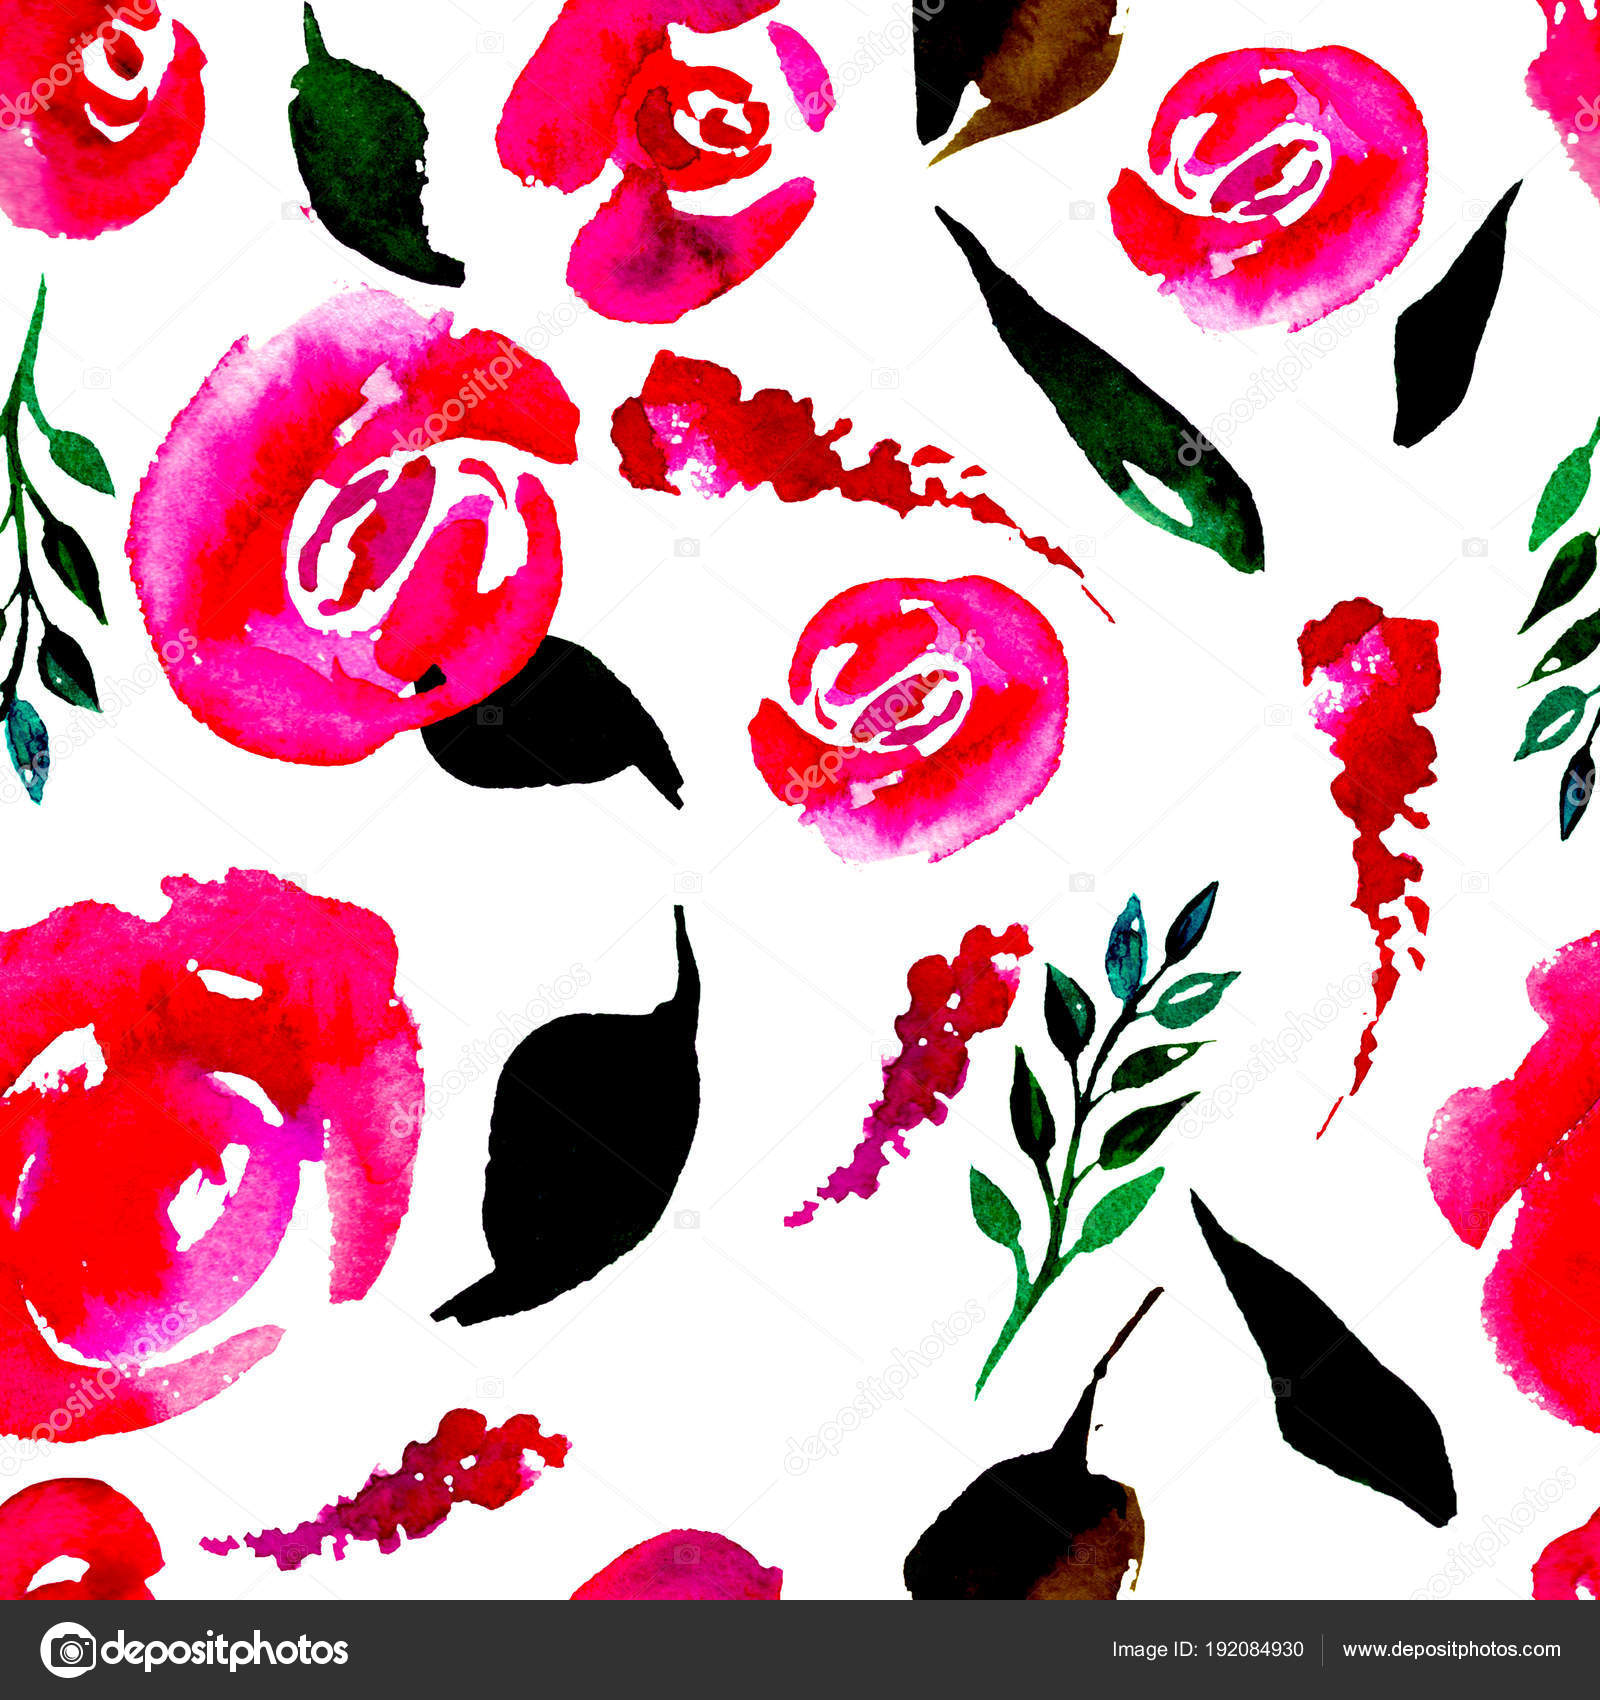 Watercolor Floral Repeat Pattern Can Be Used As A Print For